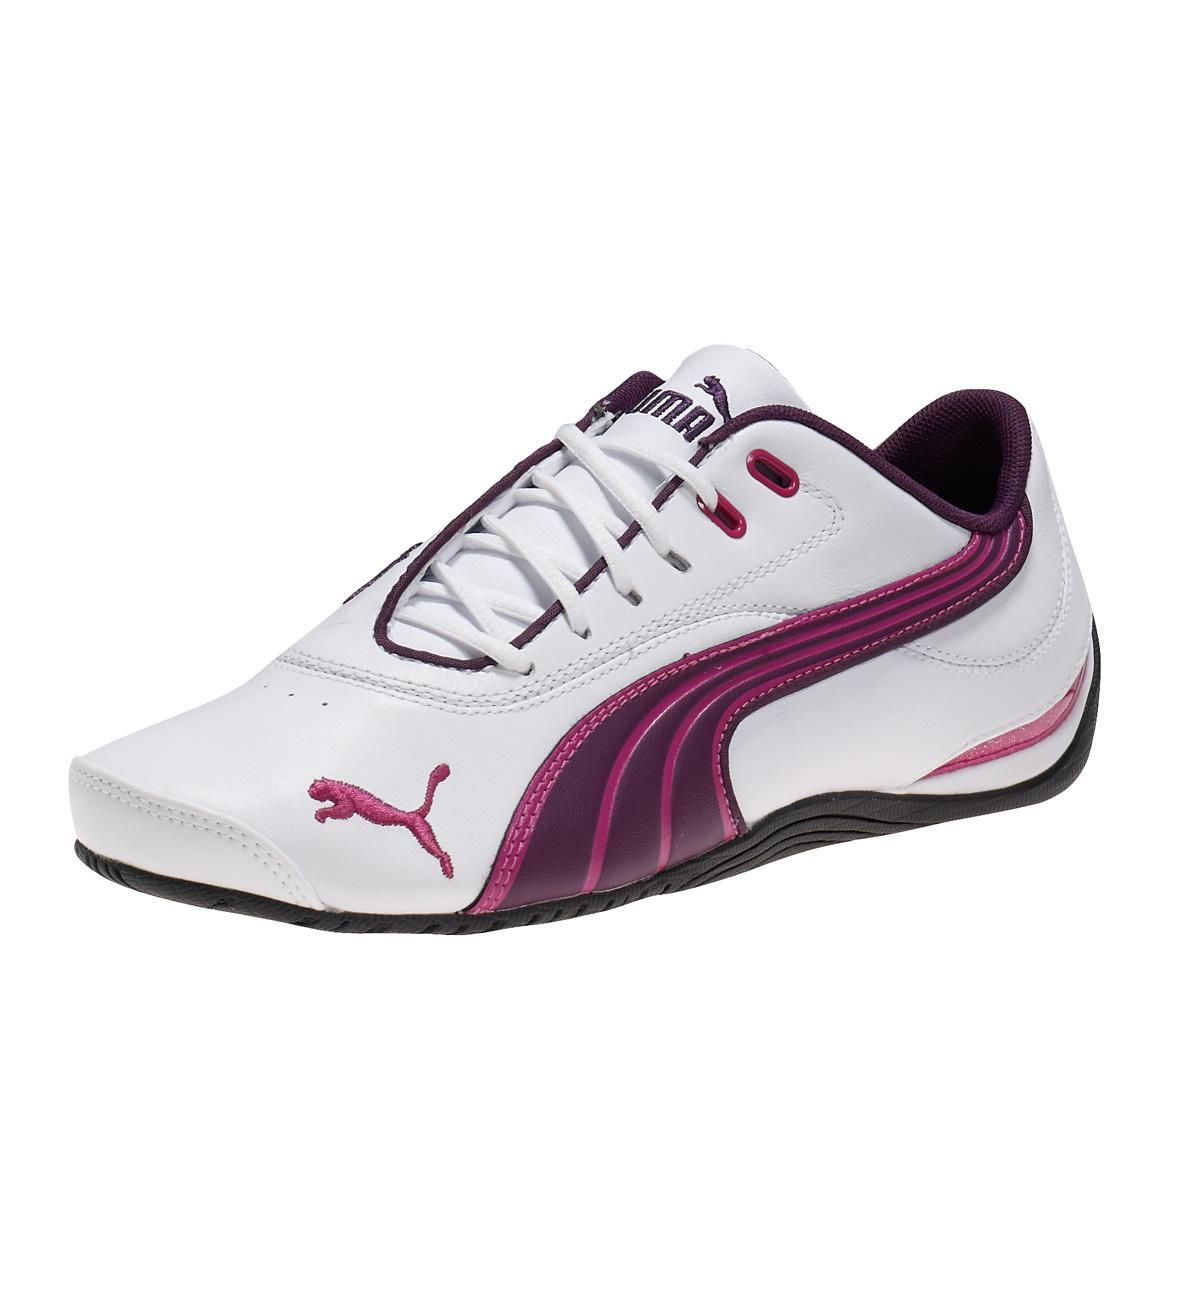 puma shoes for women | Home » Shoes » PUMA Drift Cat III ...